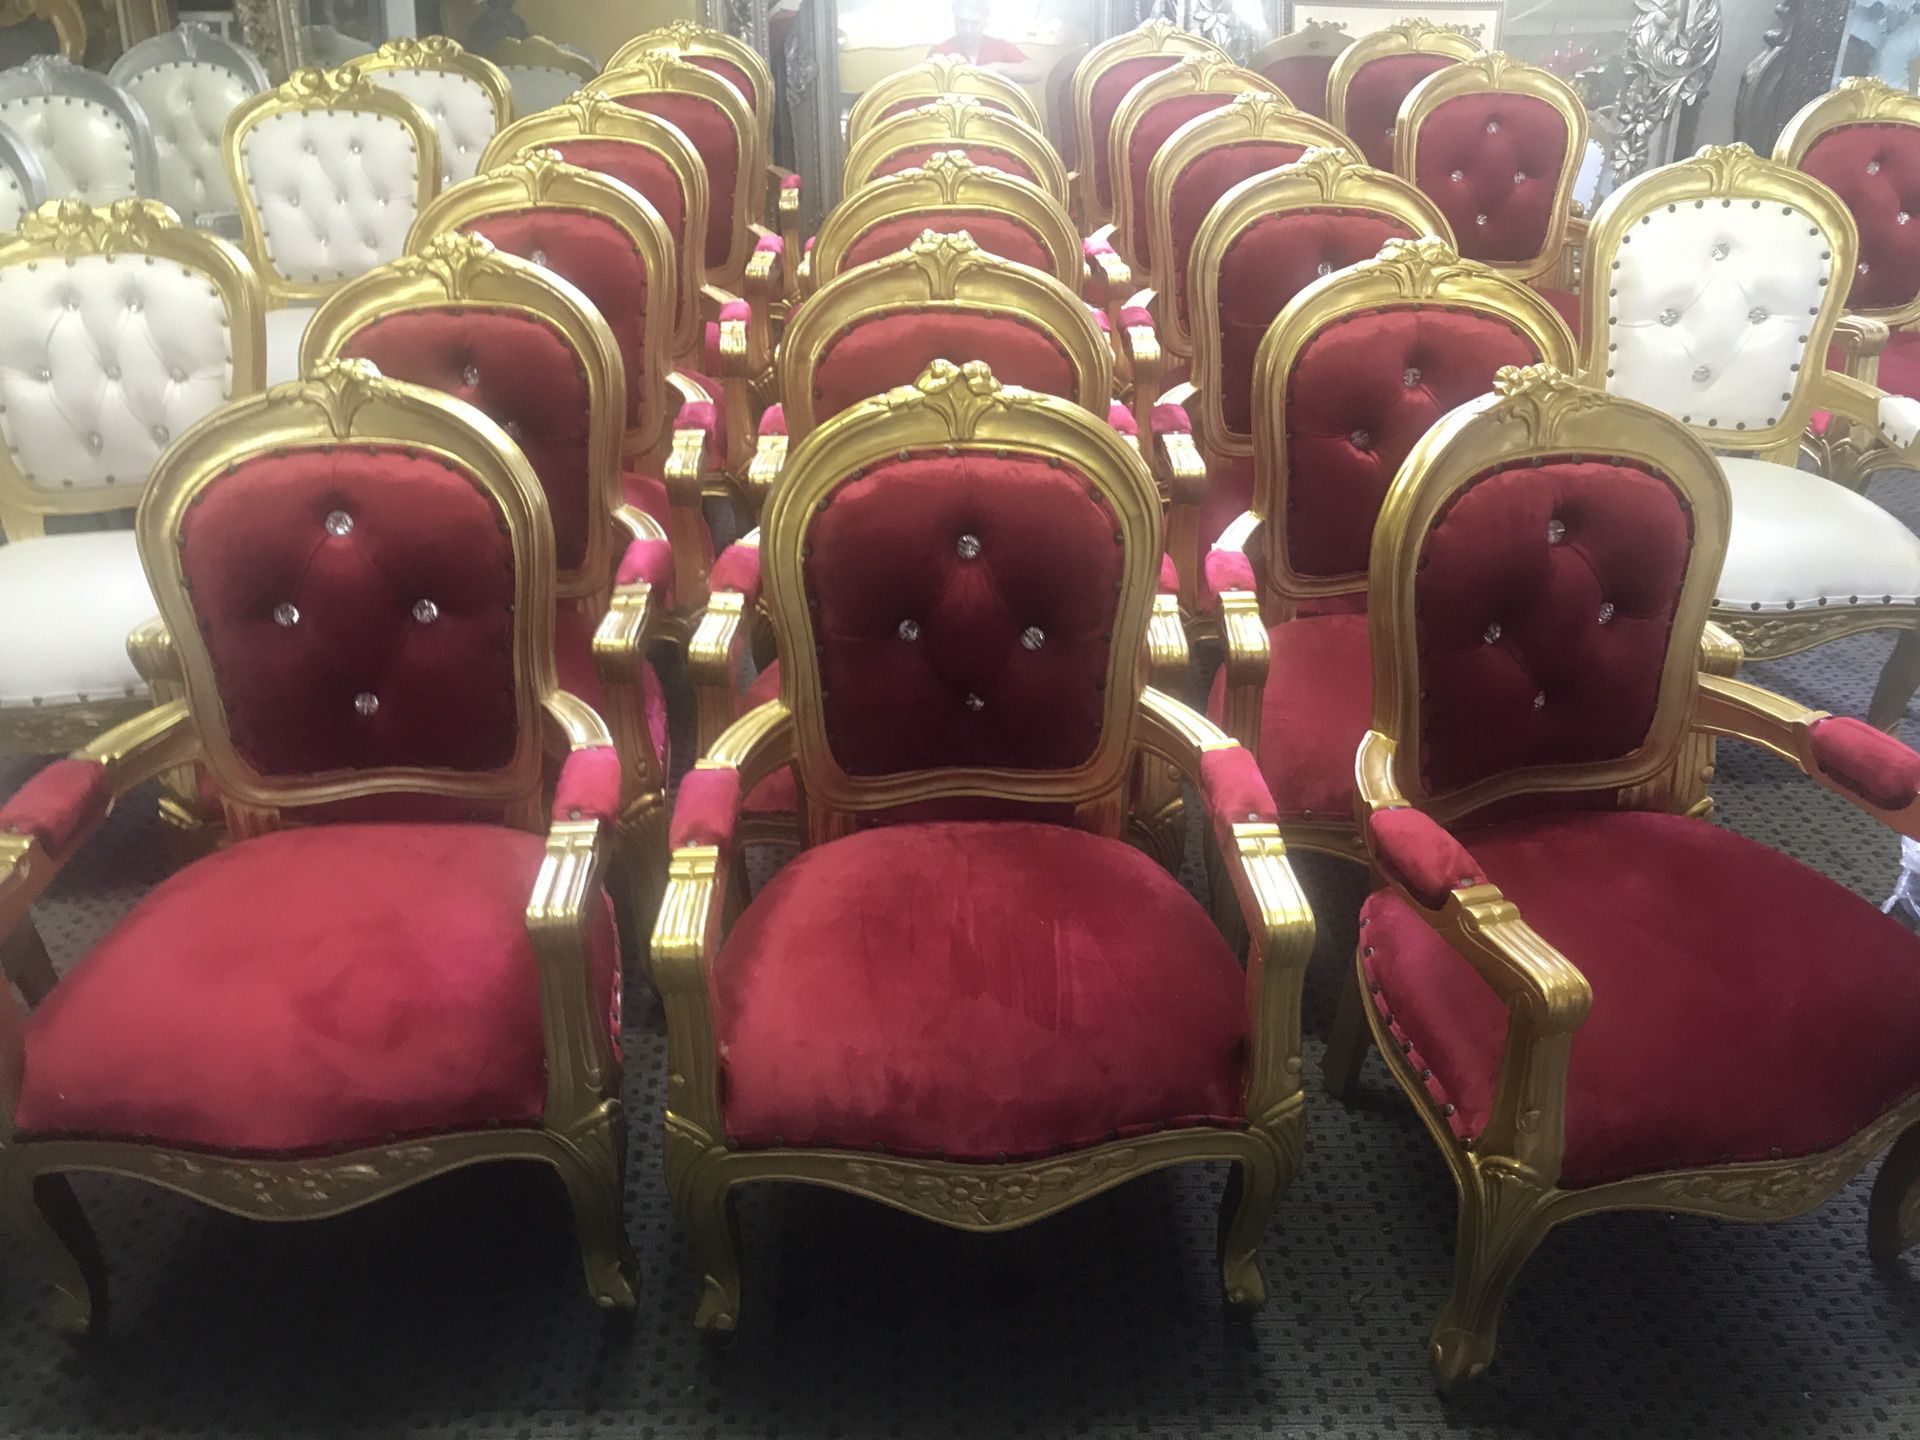 Beautiful baby throne chairs.$300 each. Best offer